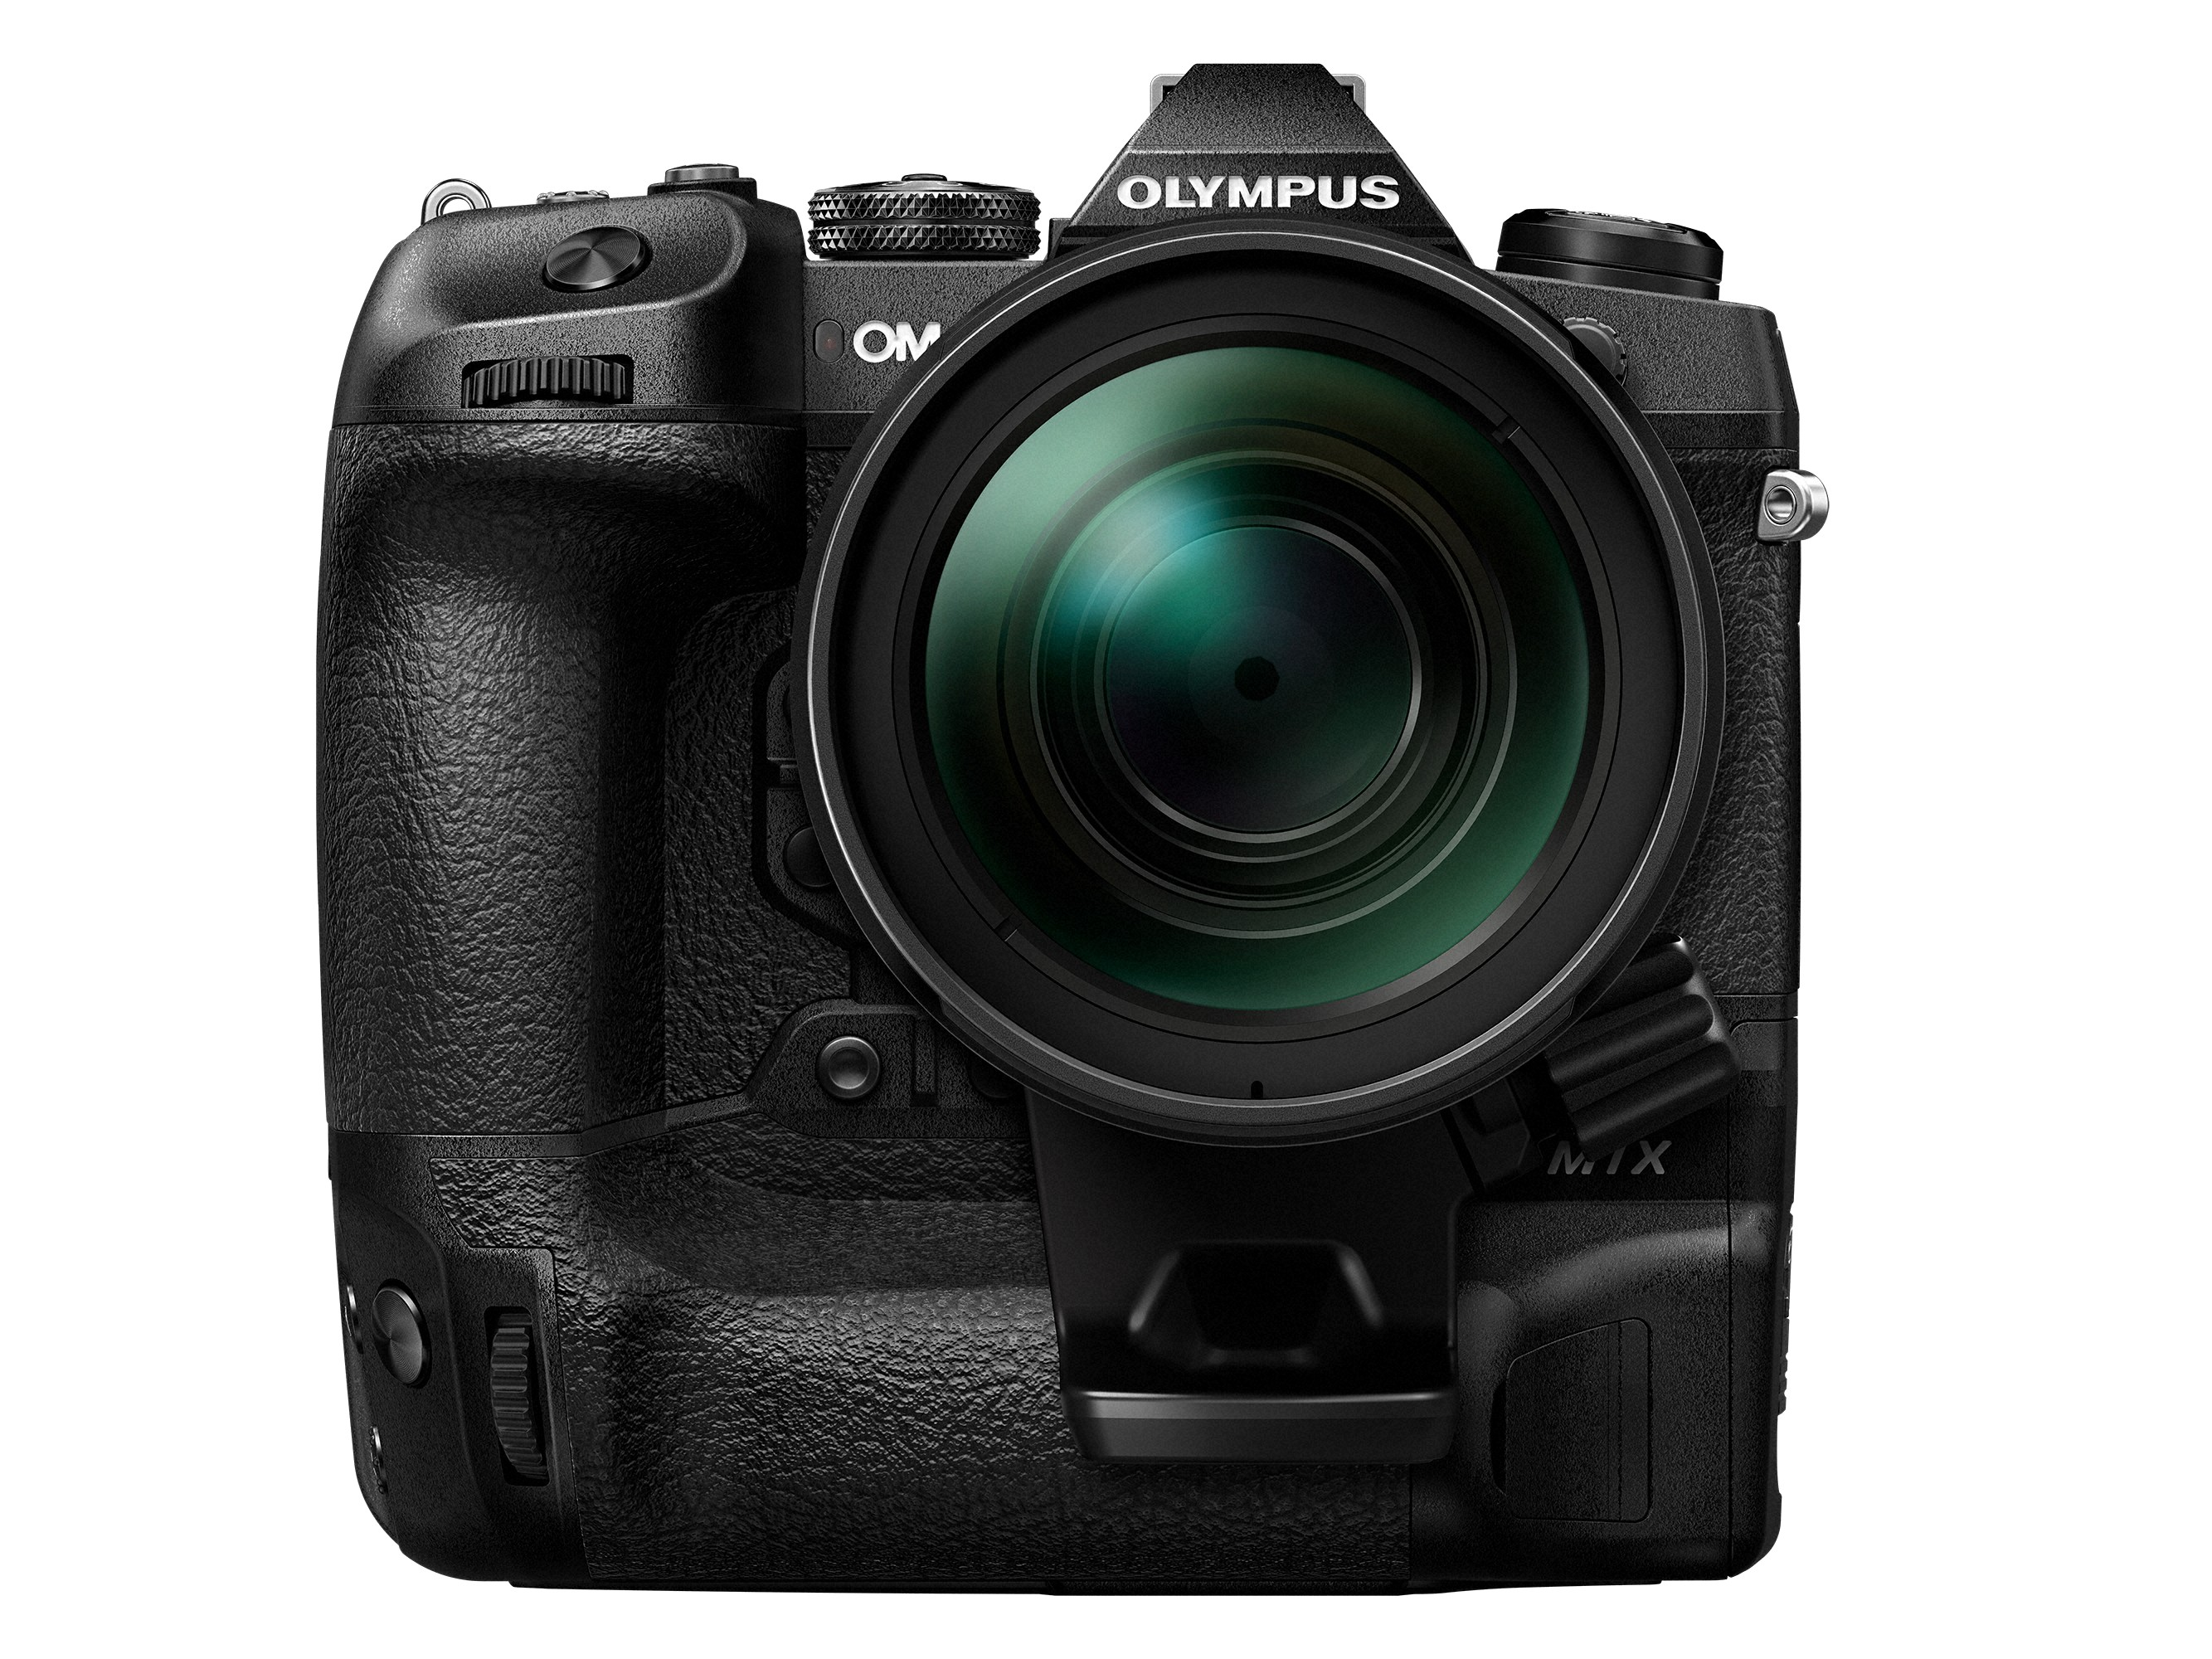 Olympus OM-D E-M1X Micro Four Thirds flagship camera is here - incl. LOG but no 10 Bit Video